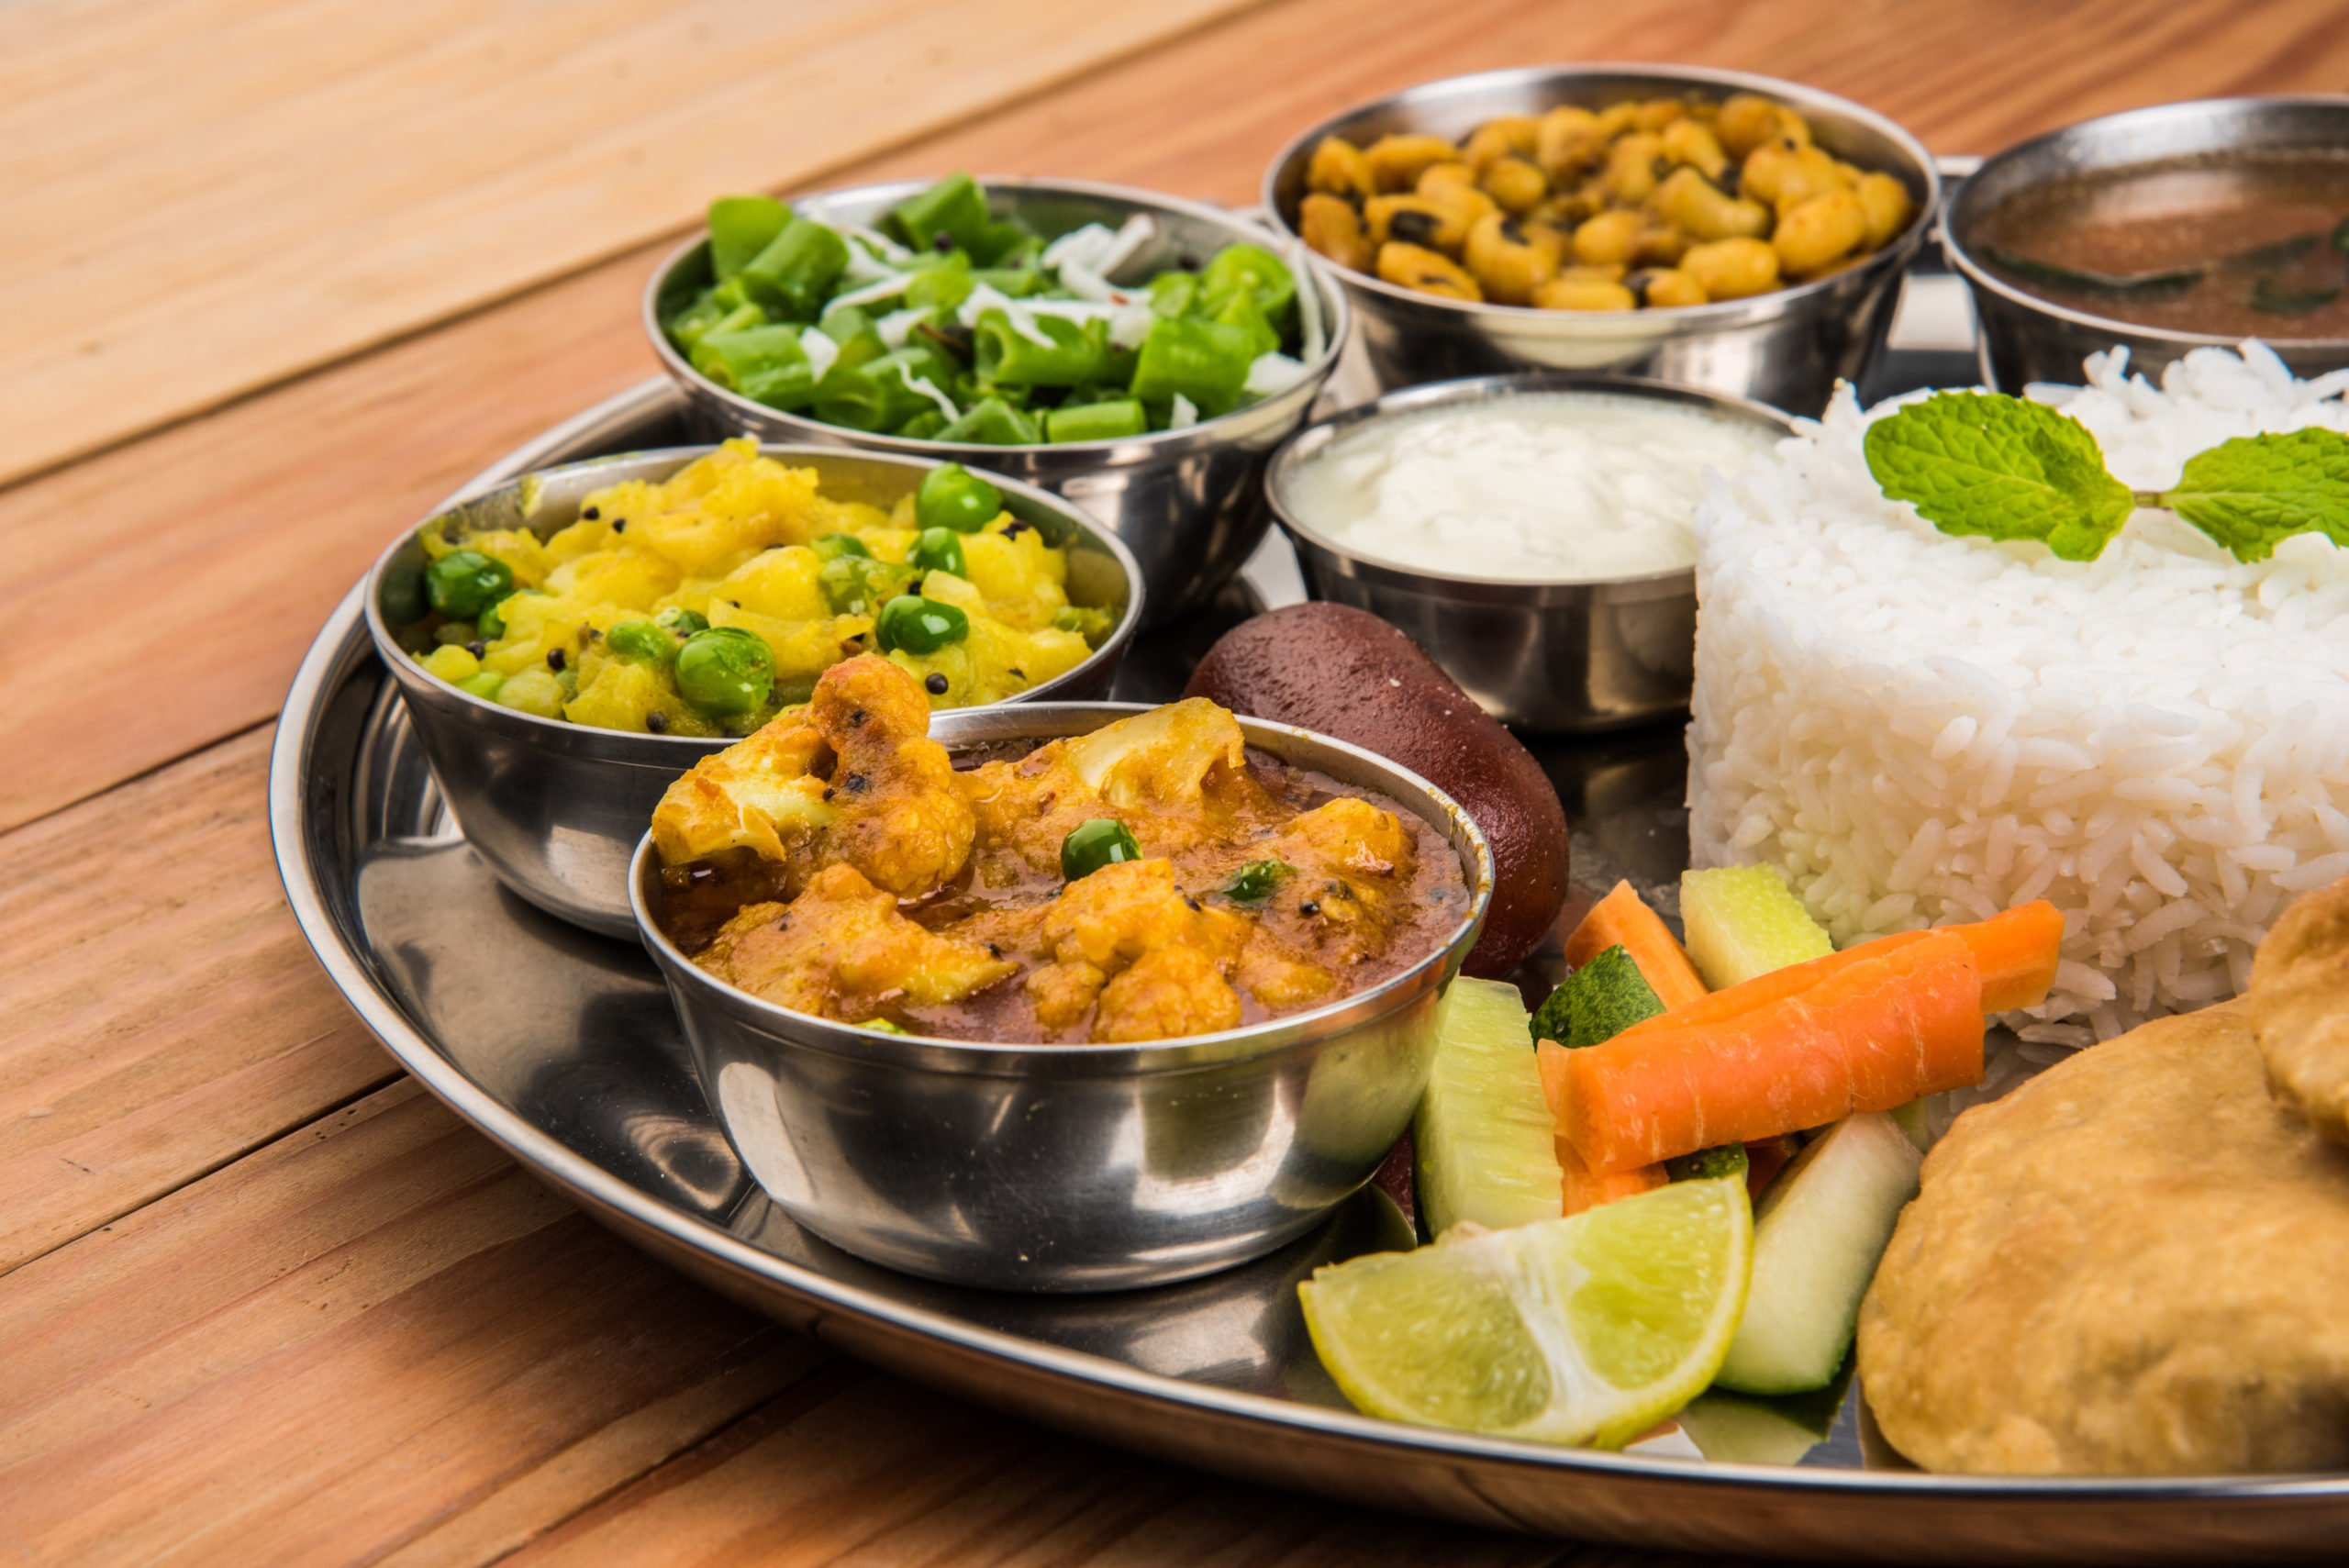 Taste Your Delicious Home Cook Meal On Our South India Cooking Class In Chennai